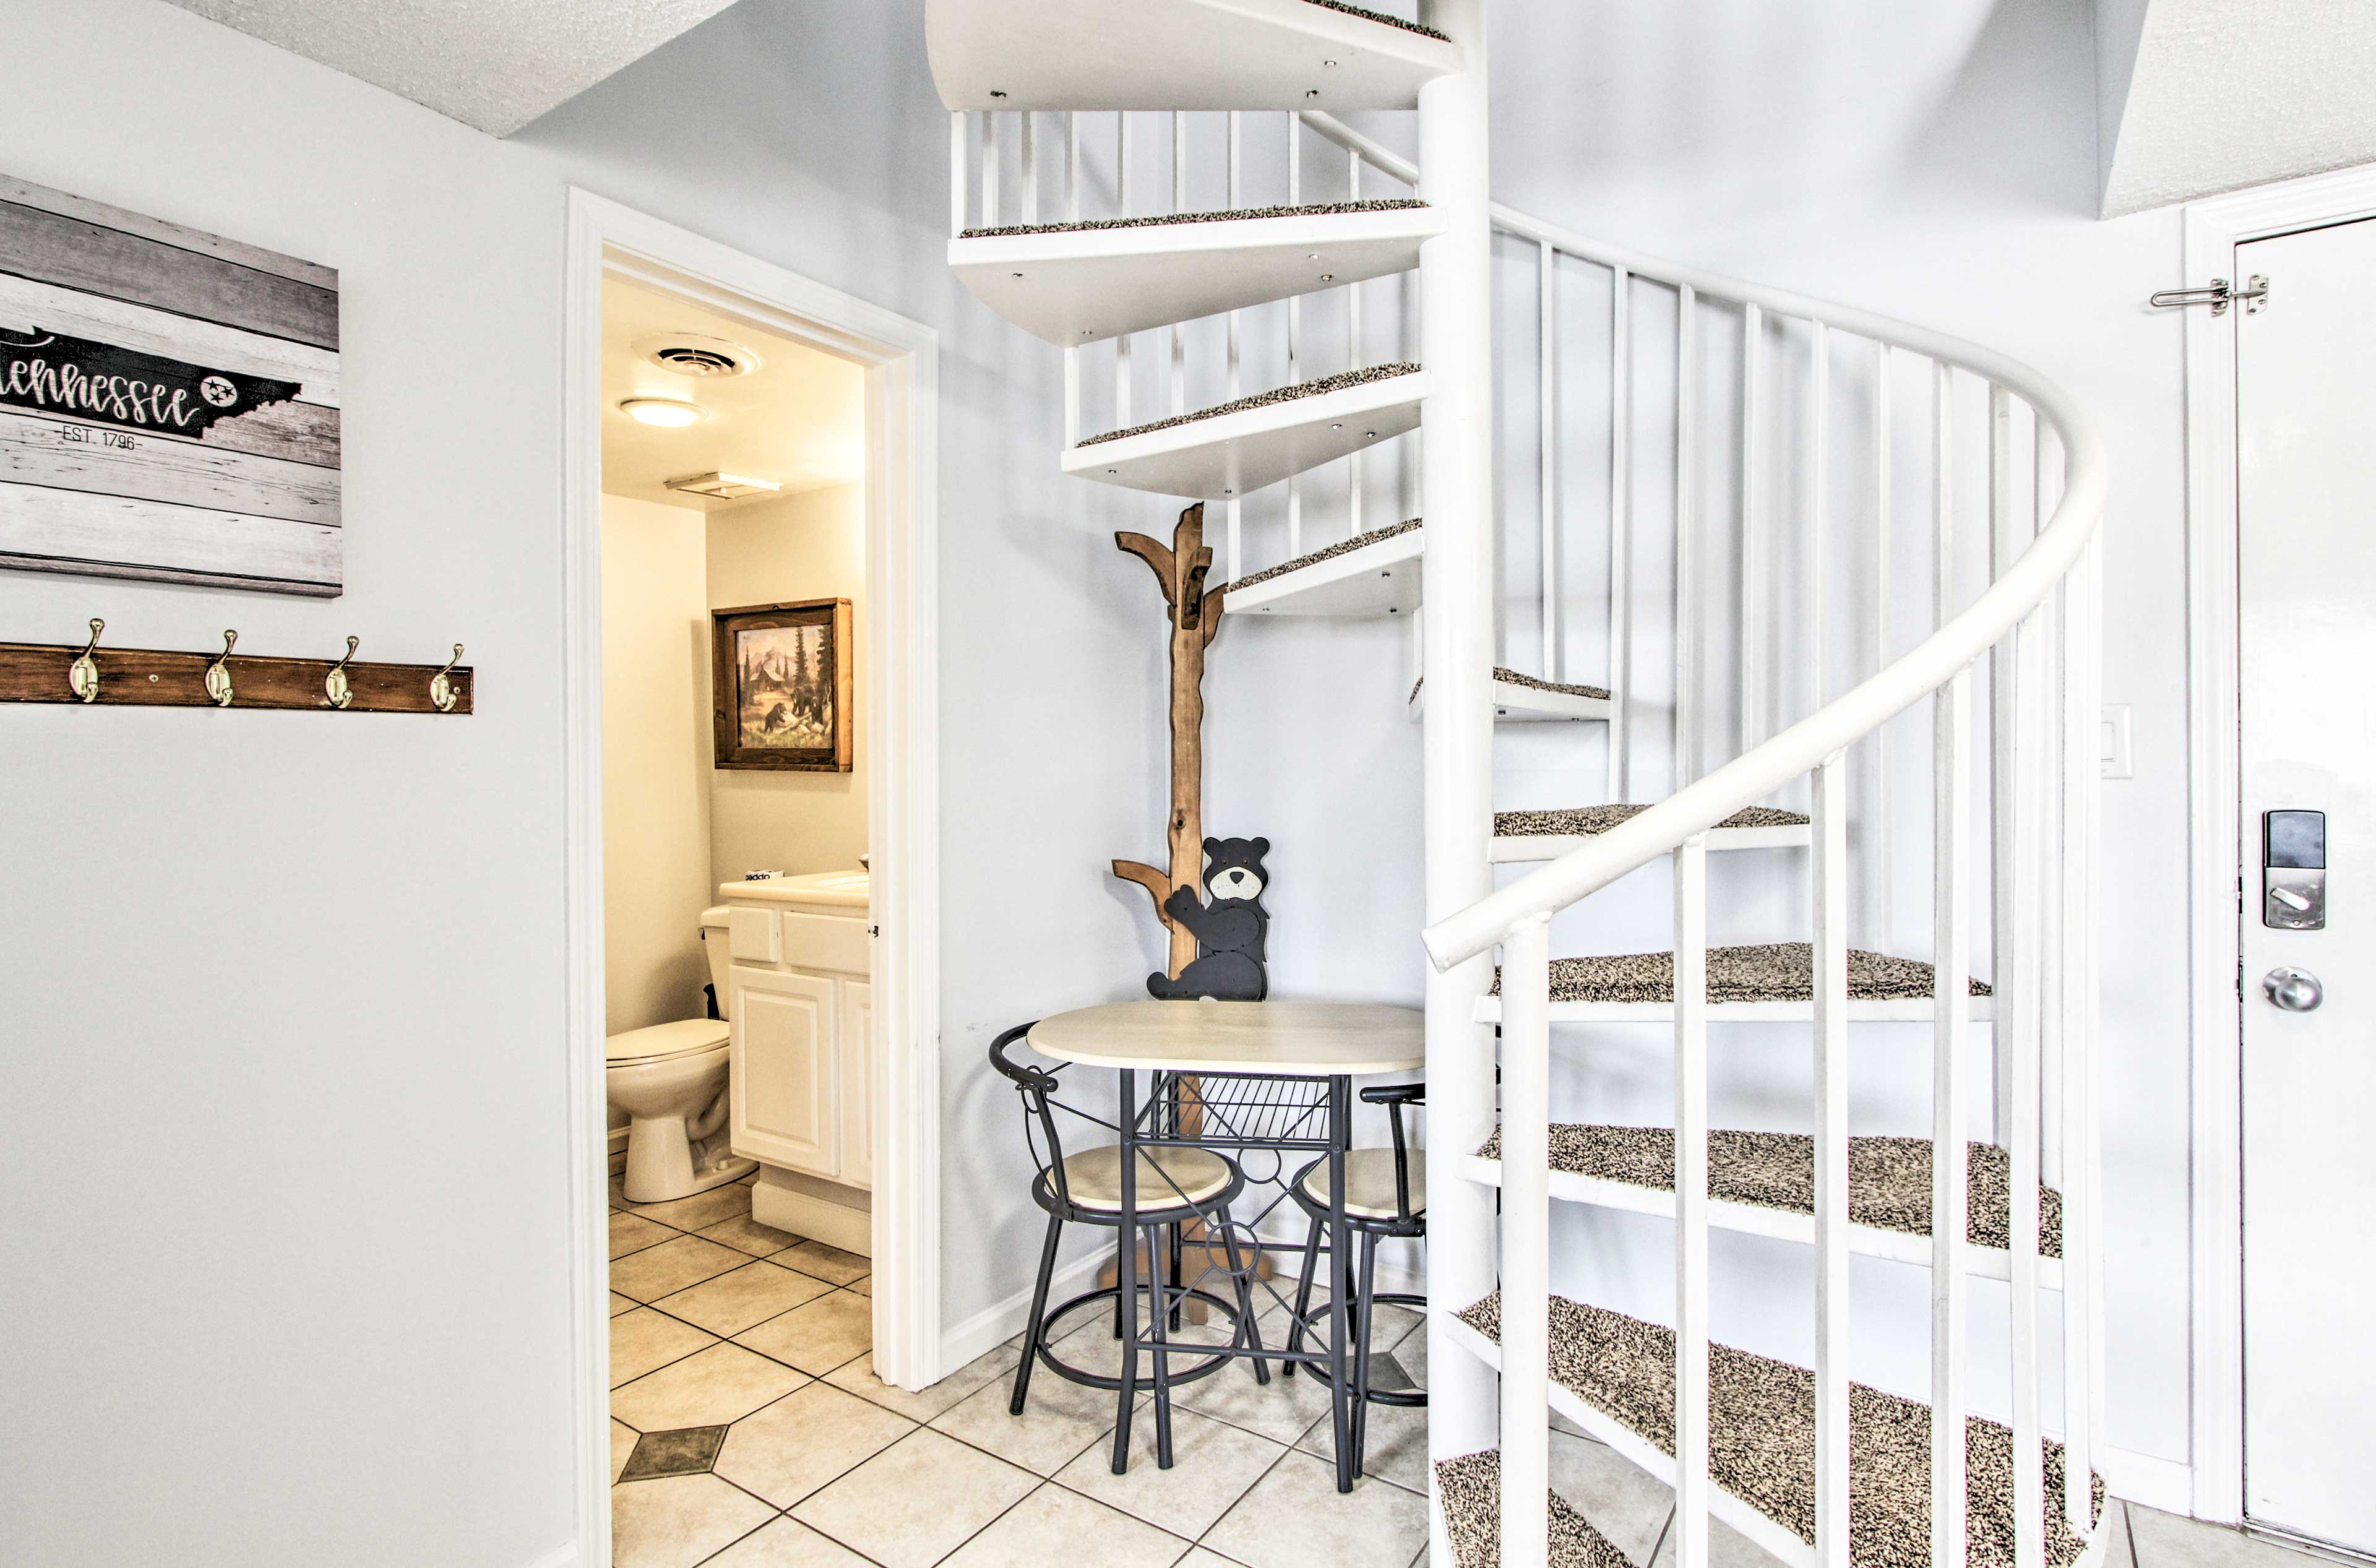 Climb up the spiral staircase to explore the loft.